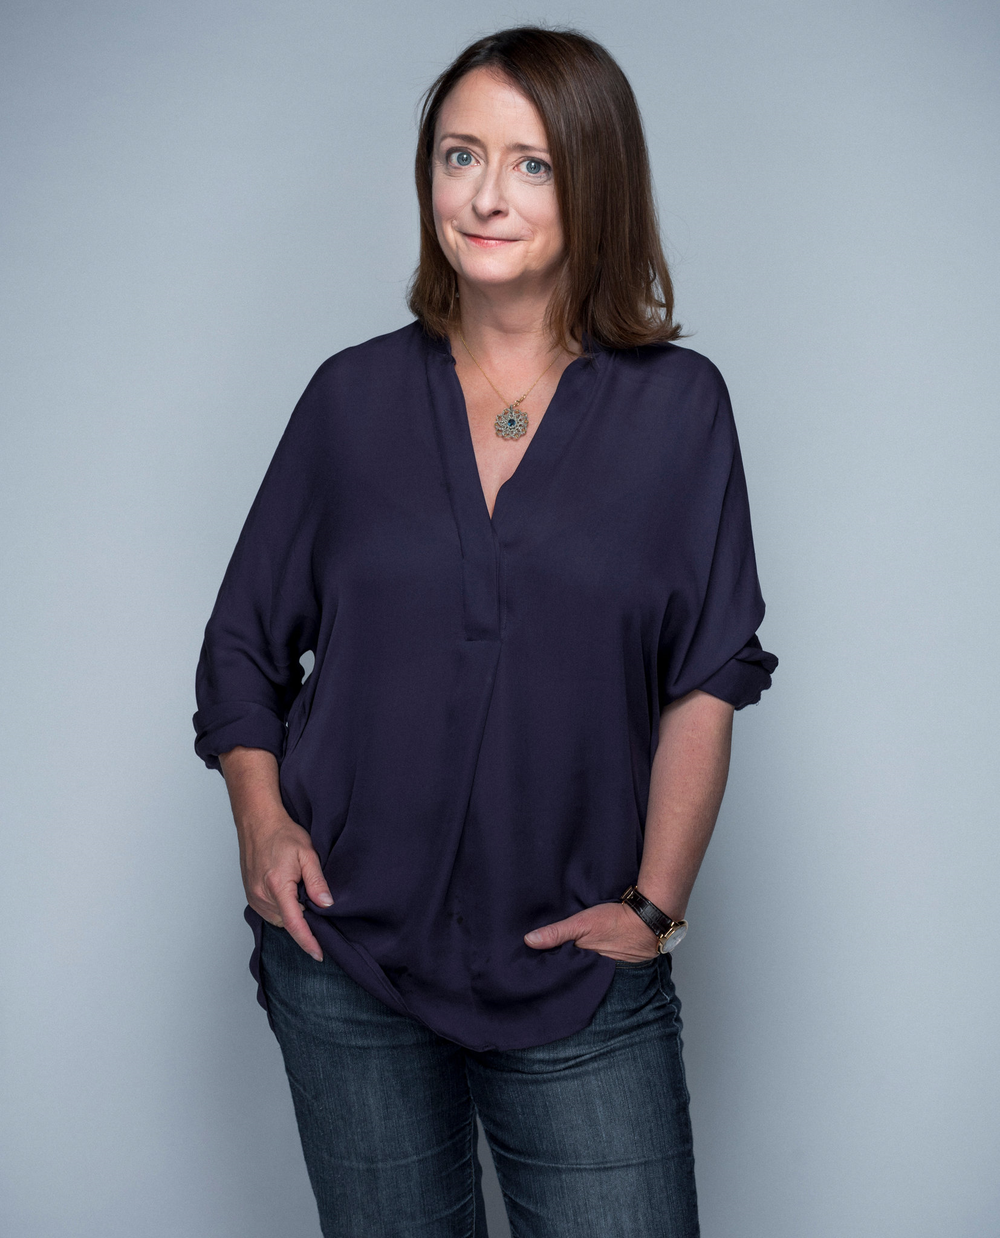 RACHEL DRATCH as Patricia Fodor